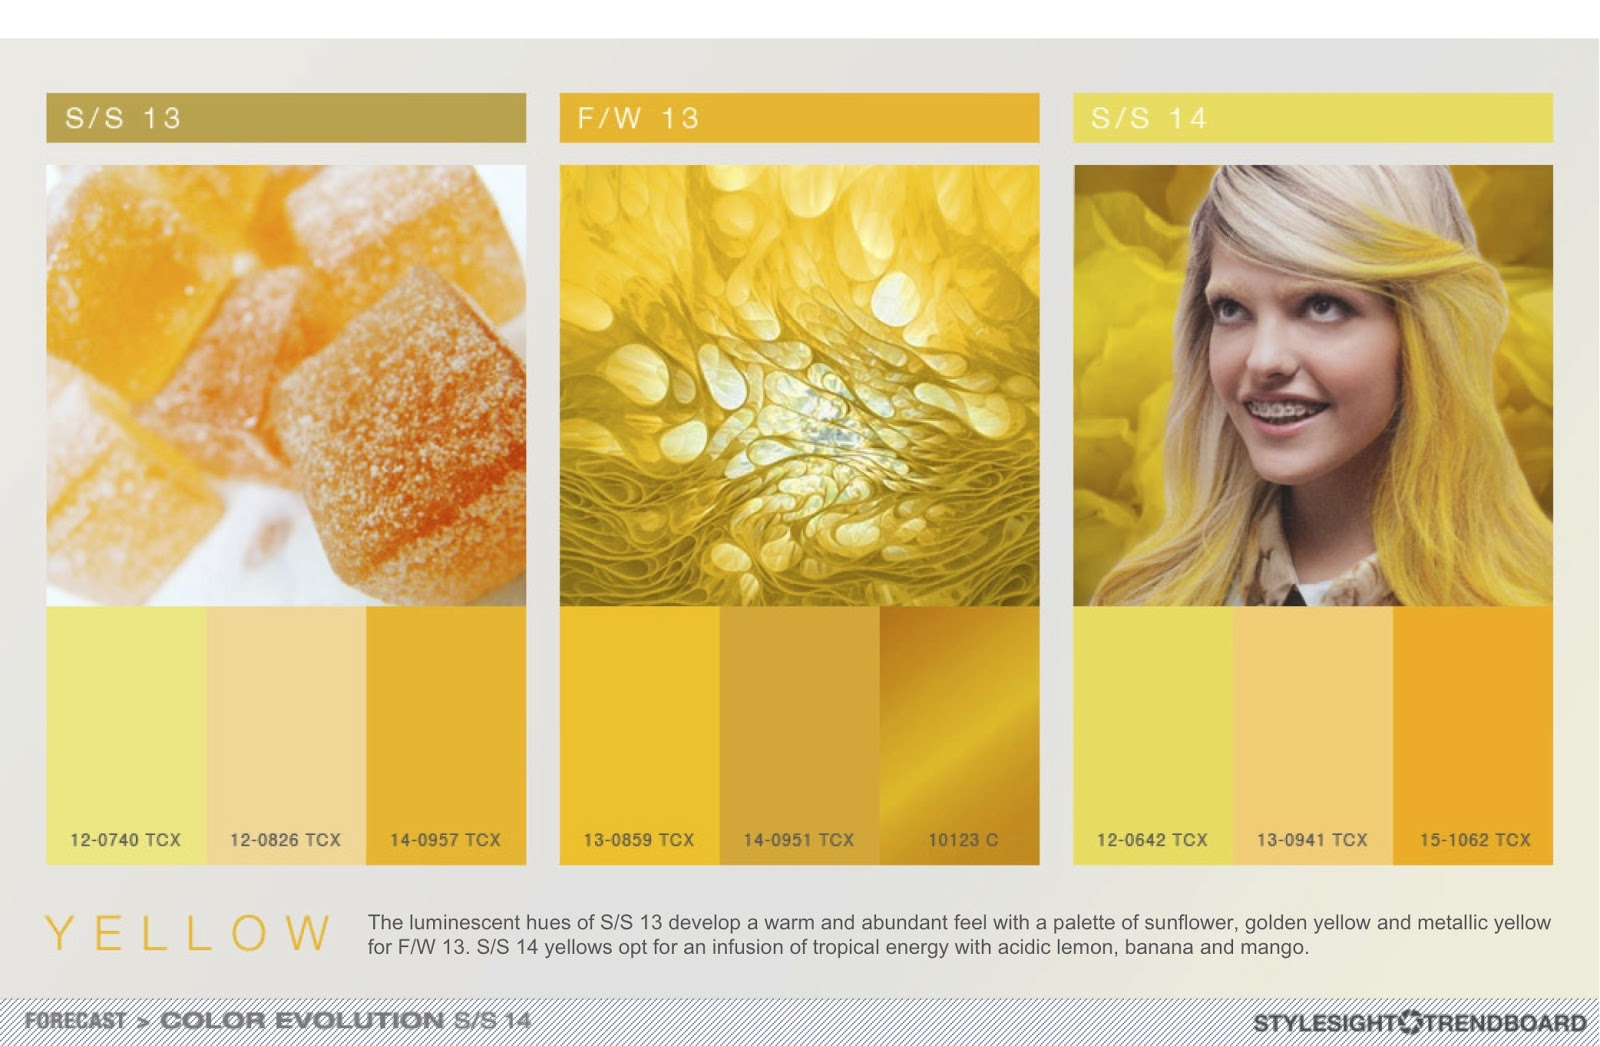 Here is a complimentary highlight of their Color Evolution S/S 14 ...